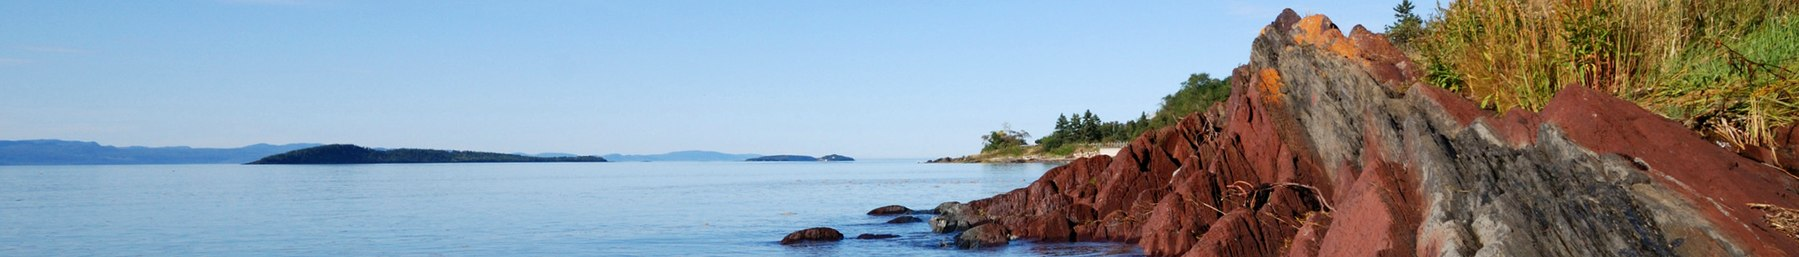 Waterside of Saint Lawrence River near Kamouraska in Southeastern Quebec